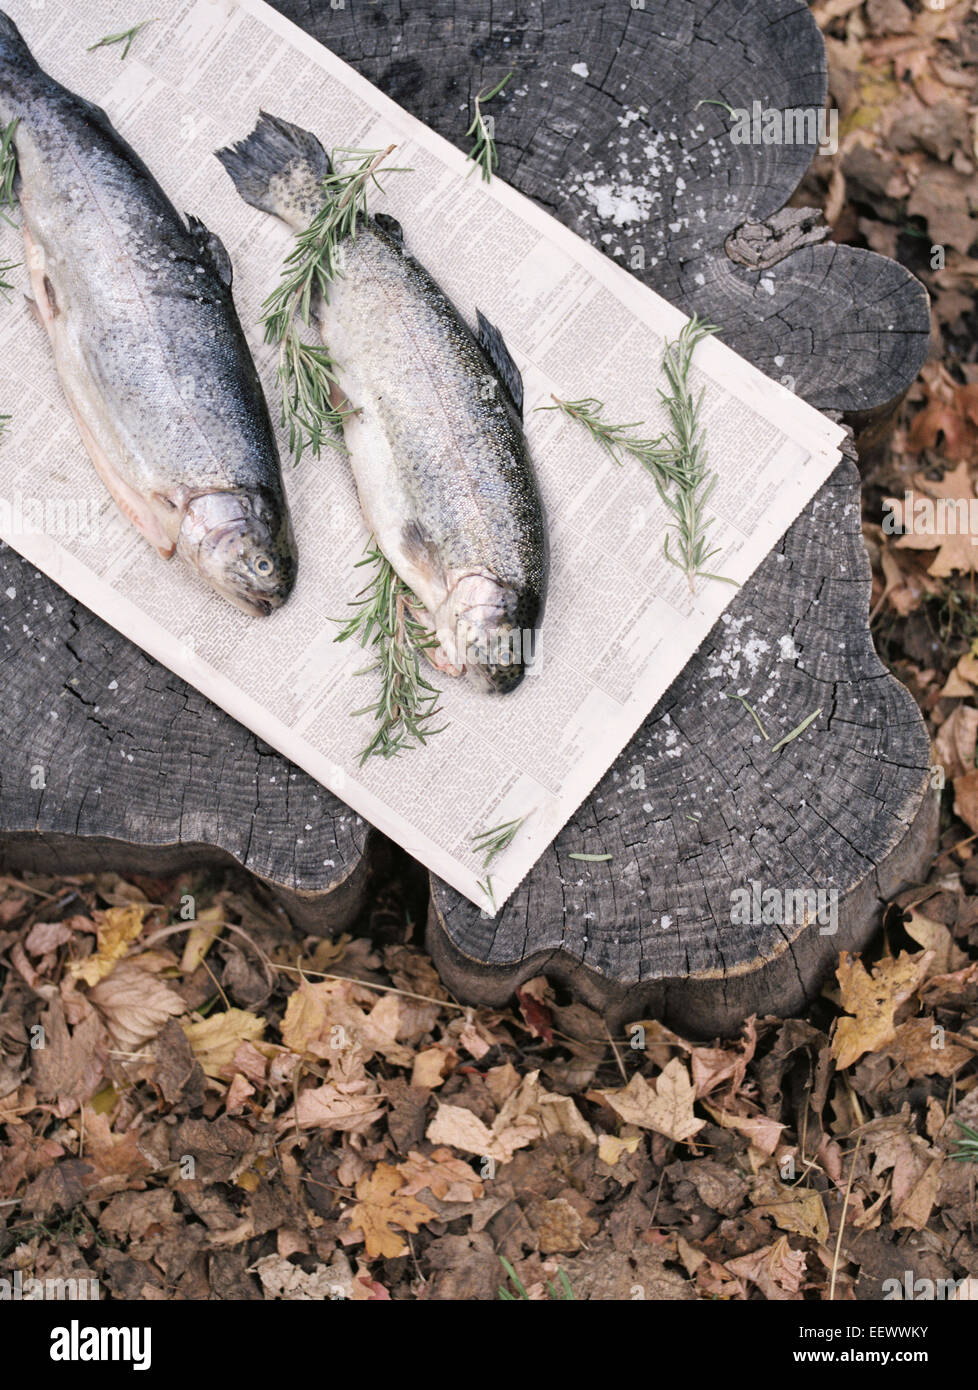 Two fish lying on a tree trunk. - Stock Image